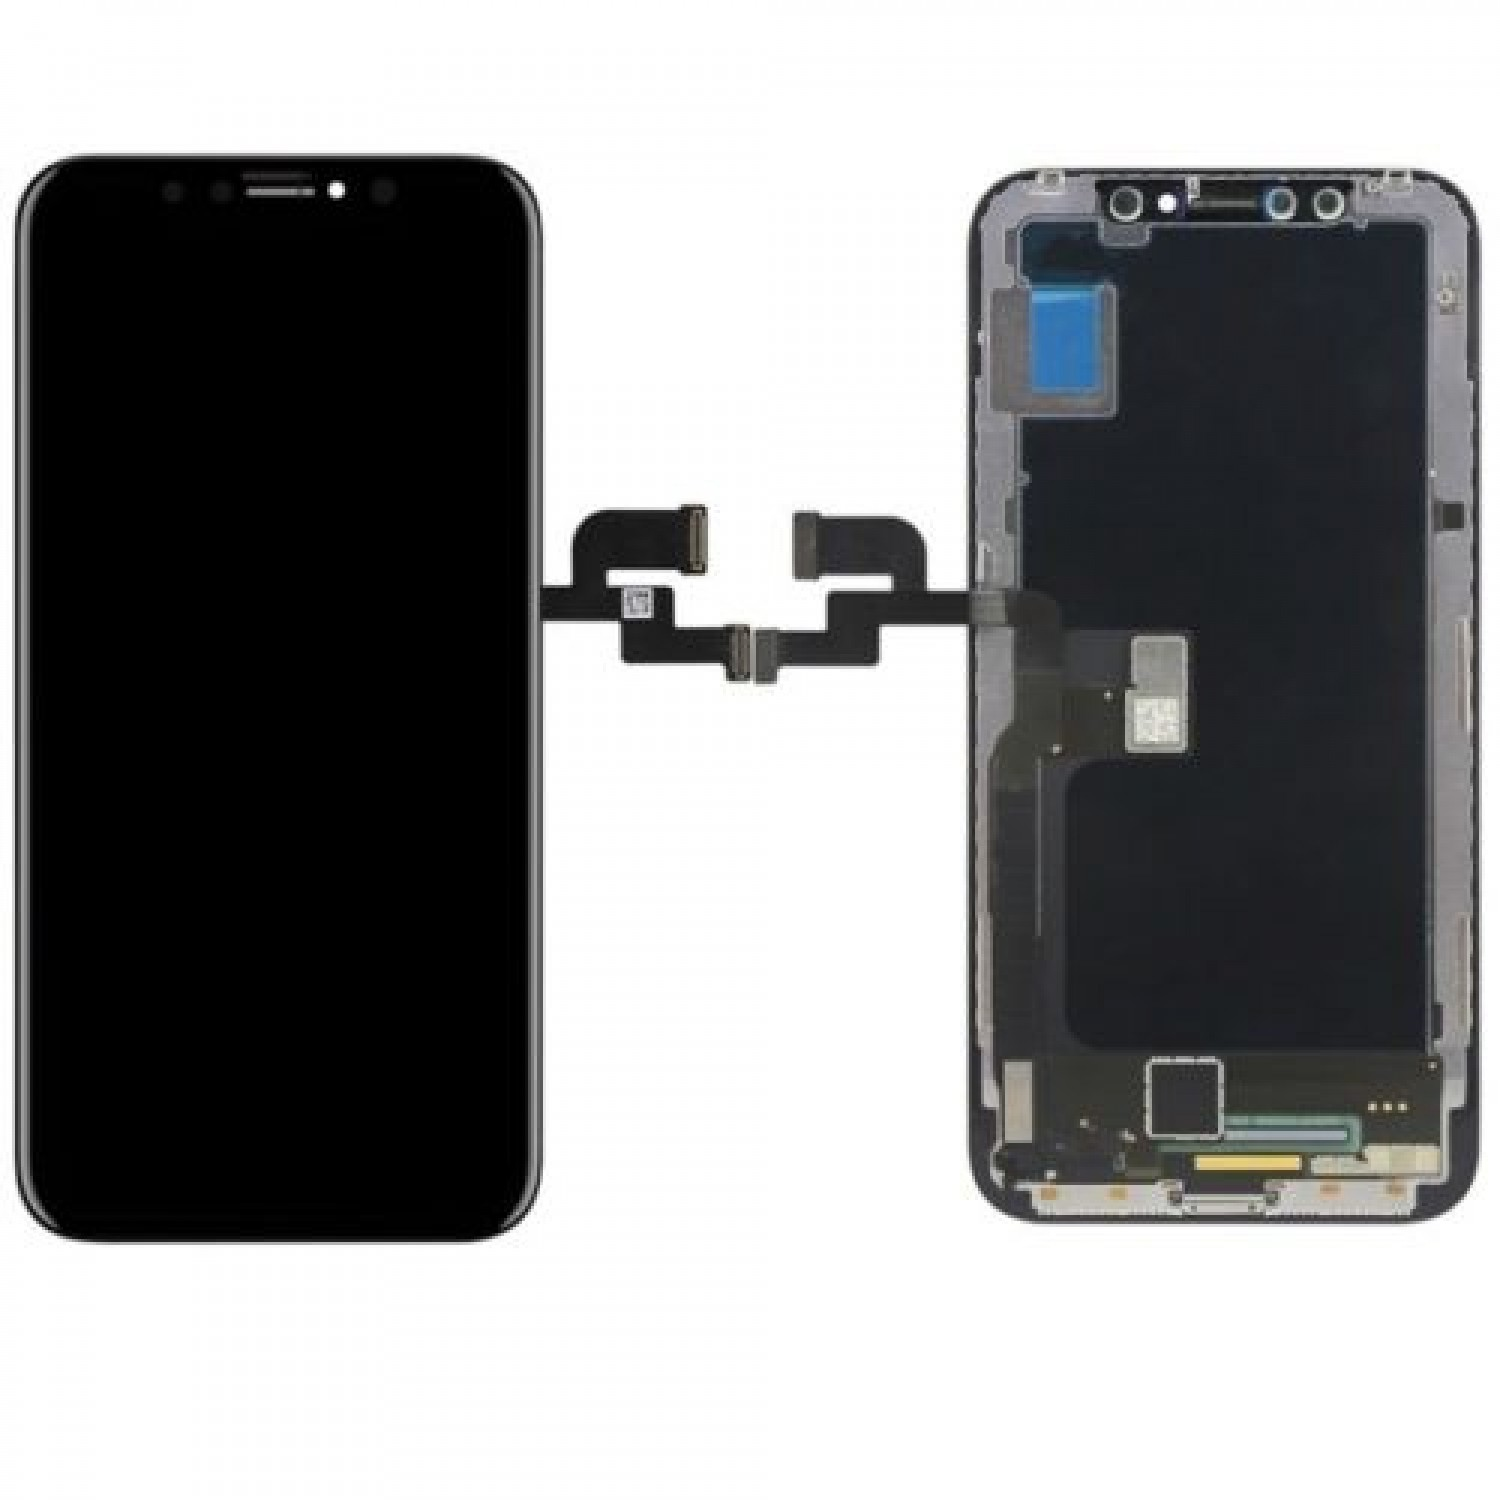 Parts for iPhone X